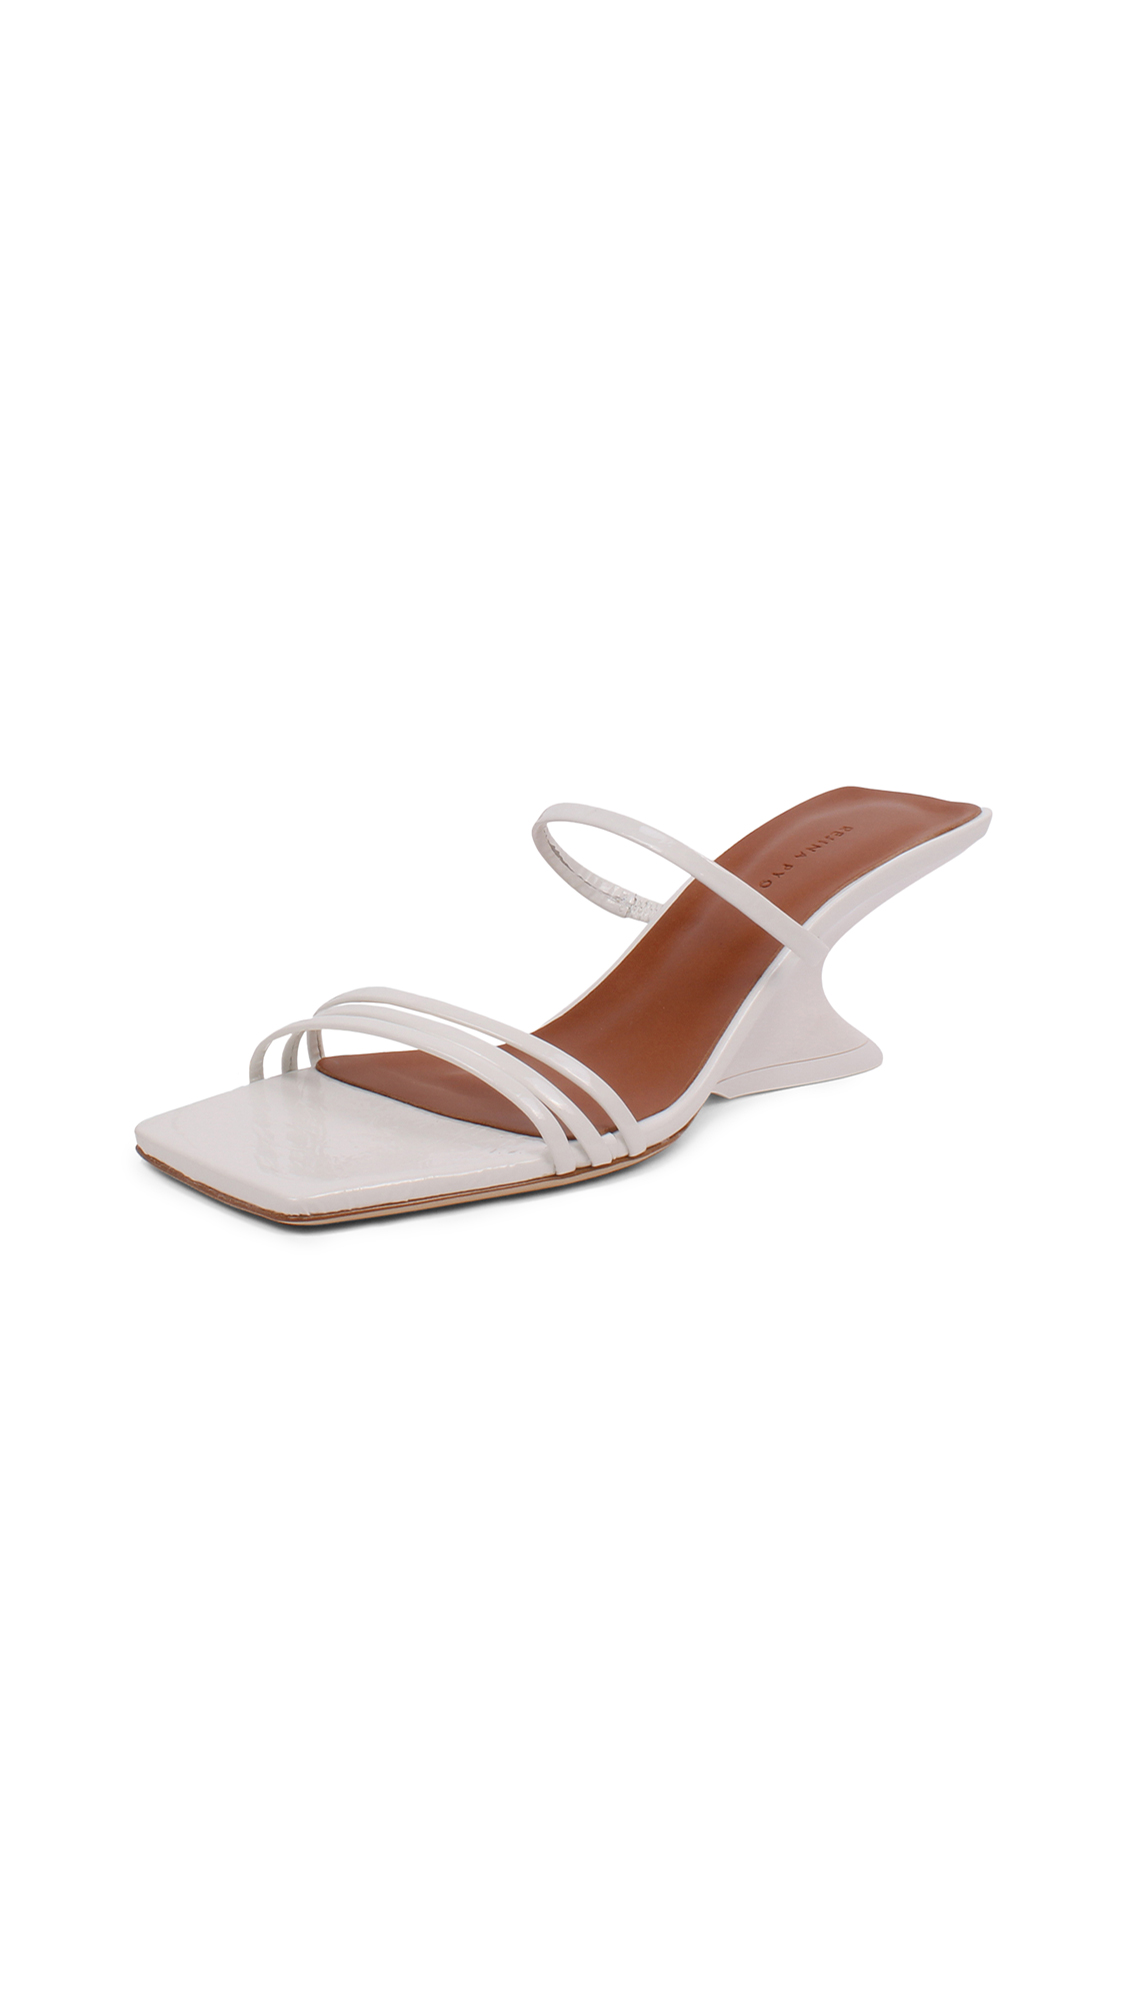 Photo of Rejina Pyo 60mm Romy Sandals - shop Rejina Pyo Sandals, Flat online